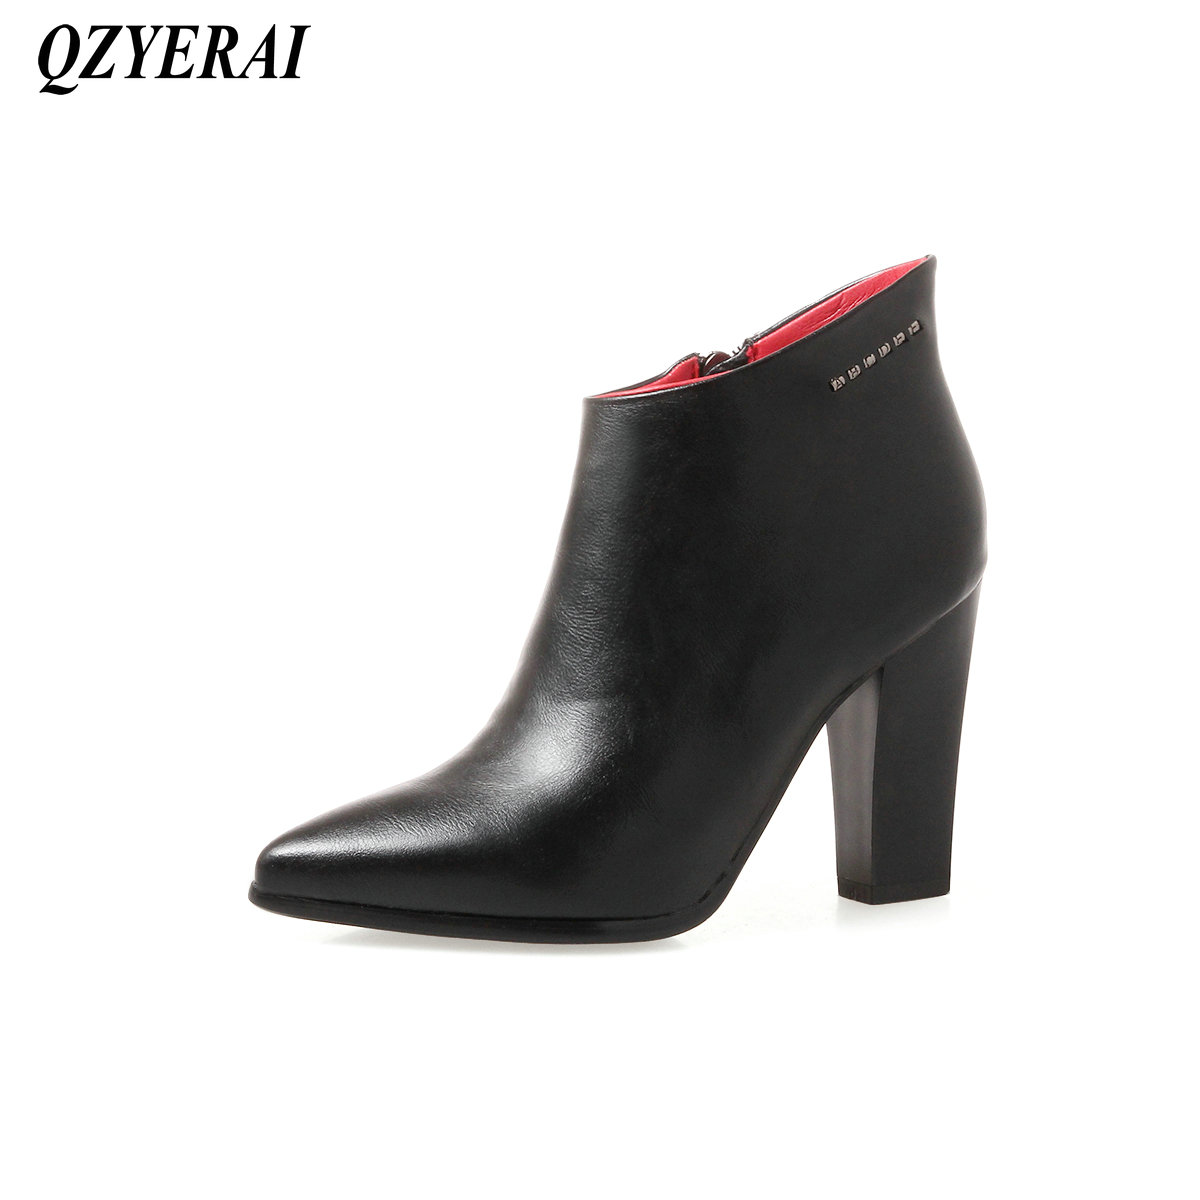 QZYERAI Winter pointy shallow fashionable lady short boots patent leather font b womens b font font